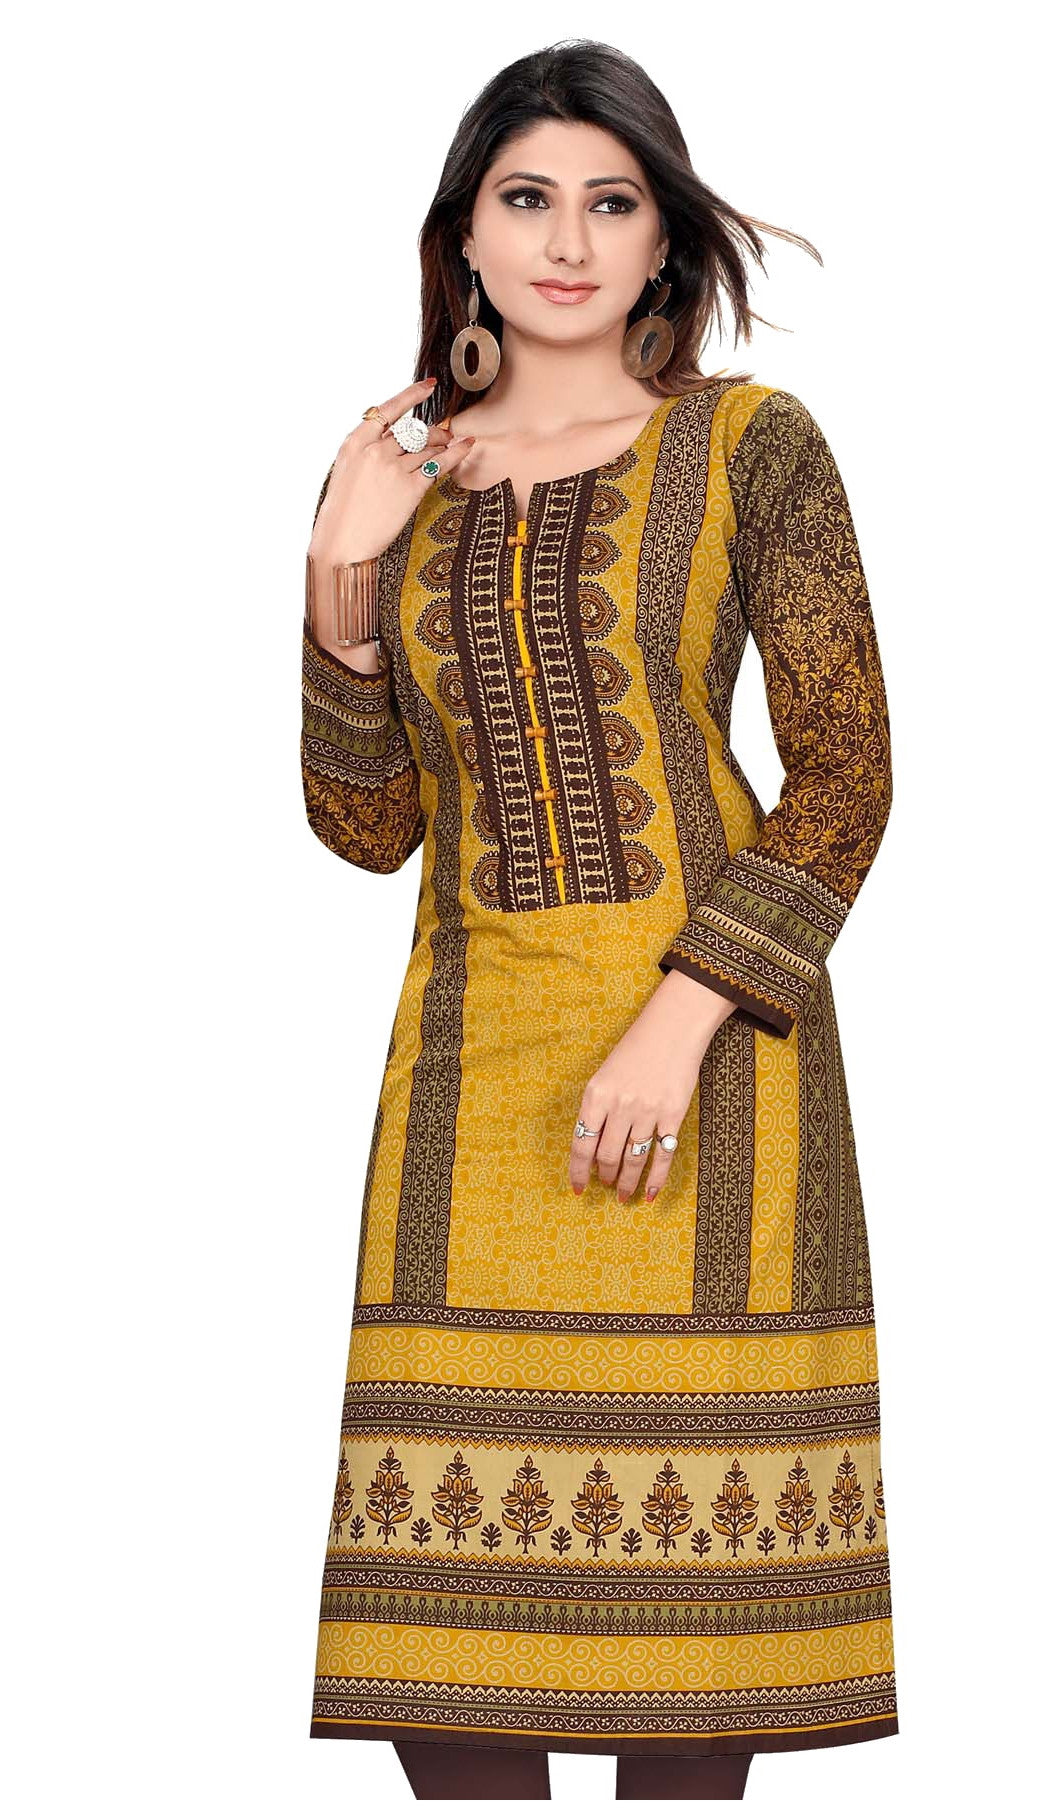 Shades of Brown Pakistani Style Cotton Printed Full Sleeves Long Kurti